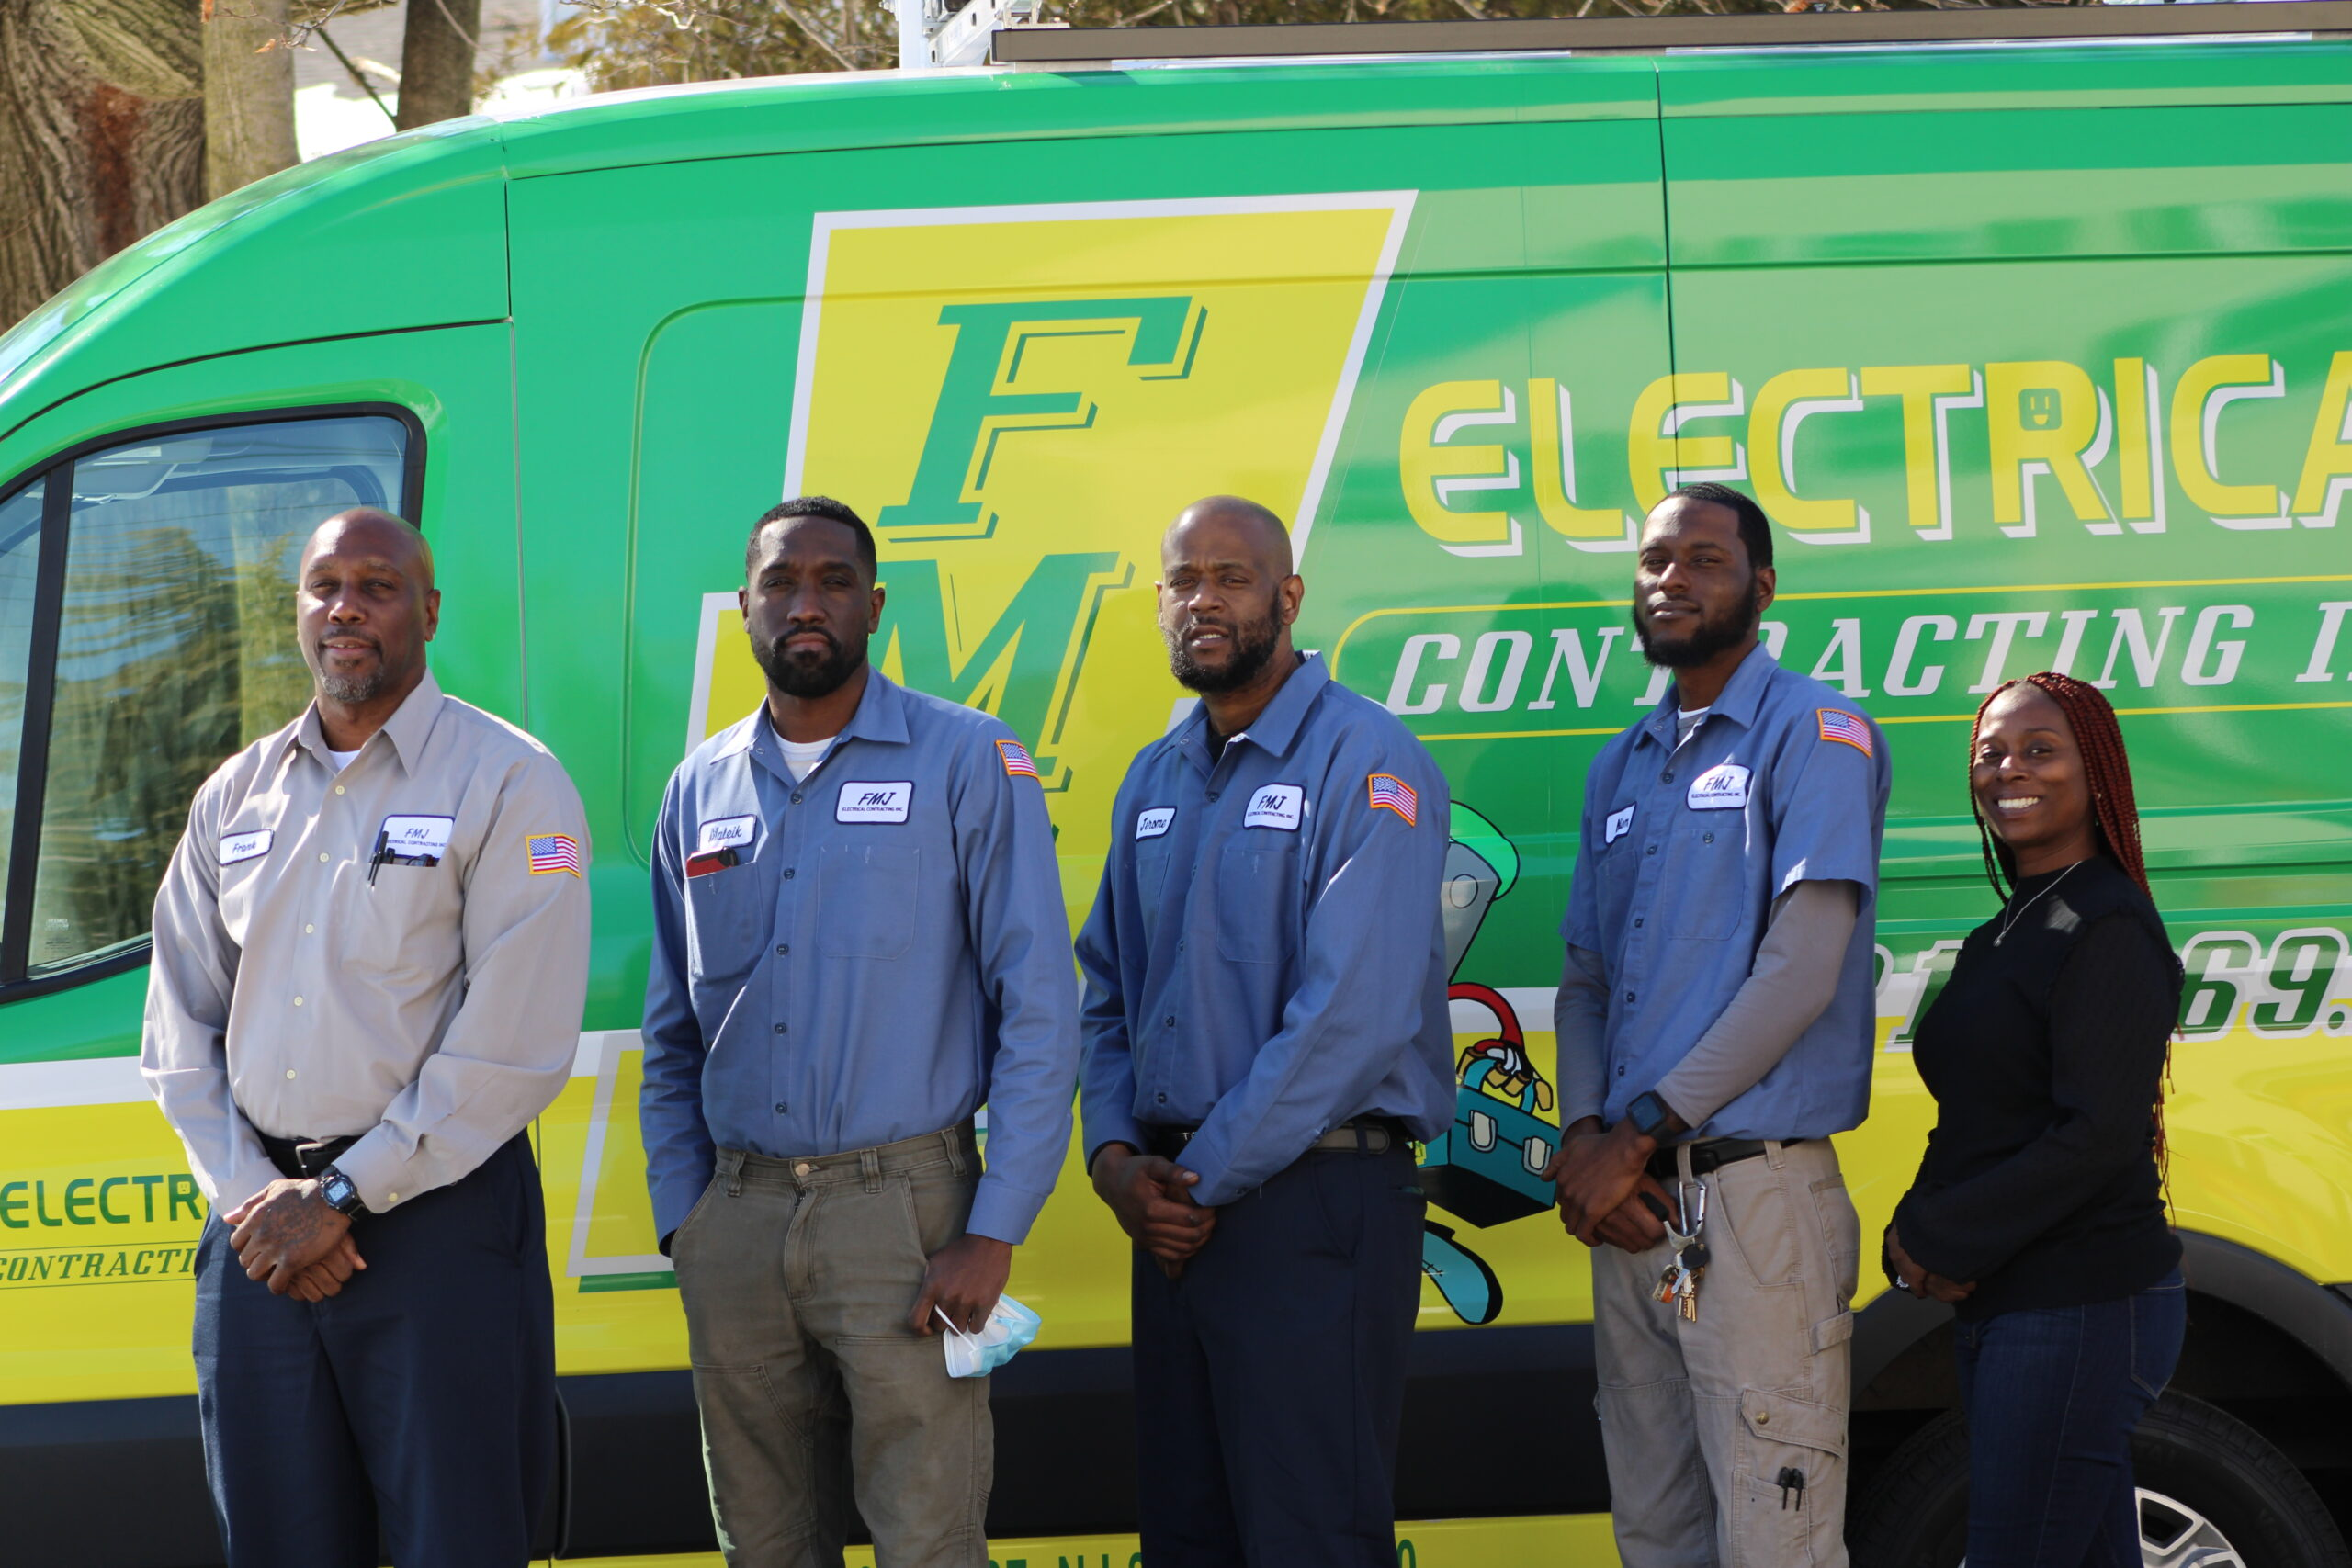 The Team at FMJ Electrical posing for a picture in front of two of the company vans